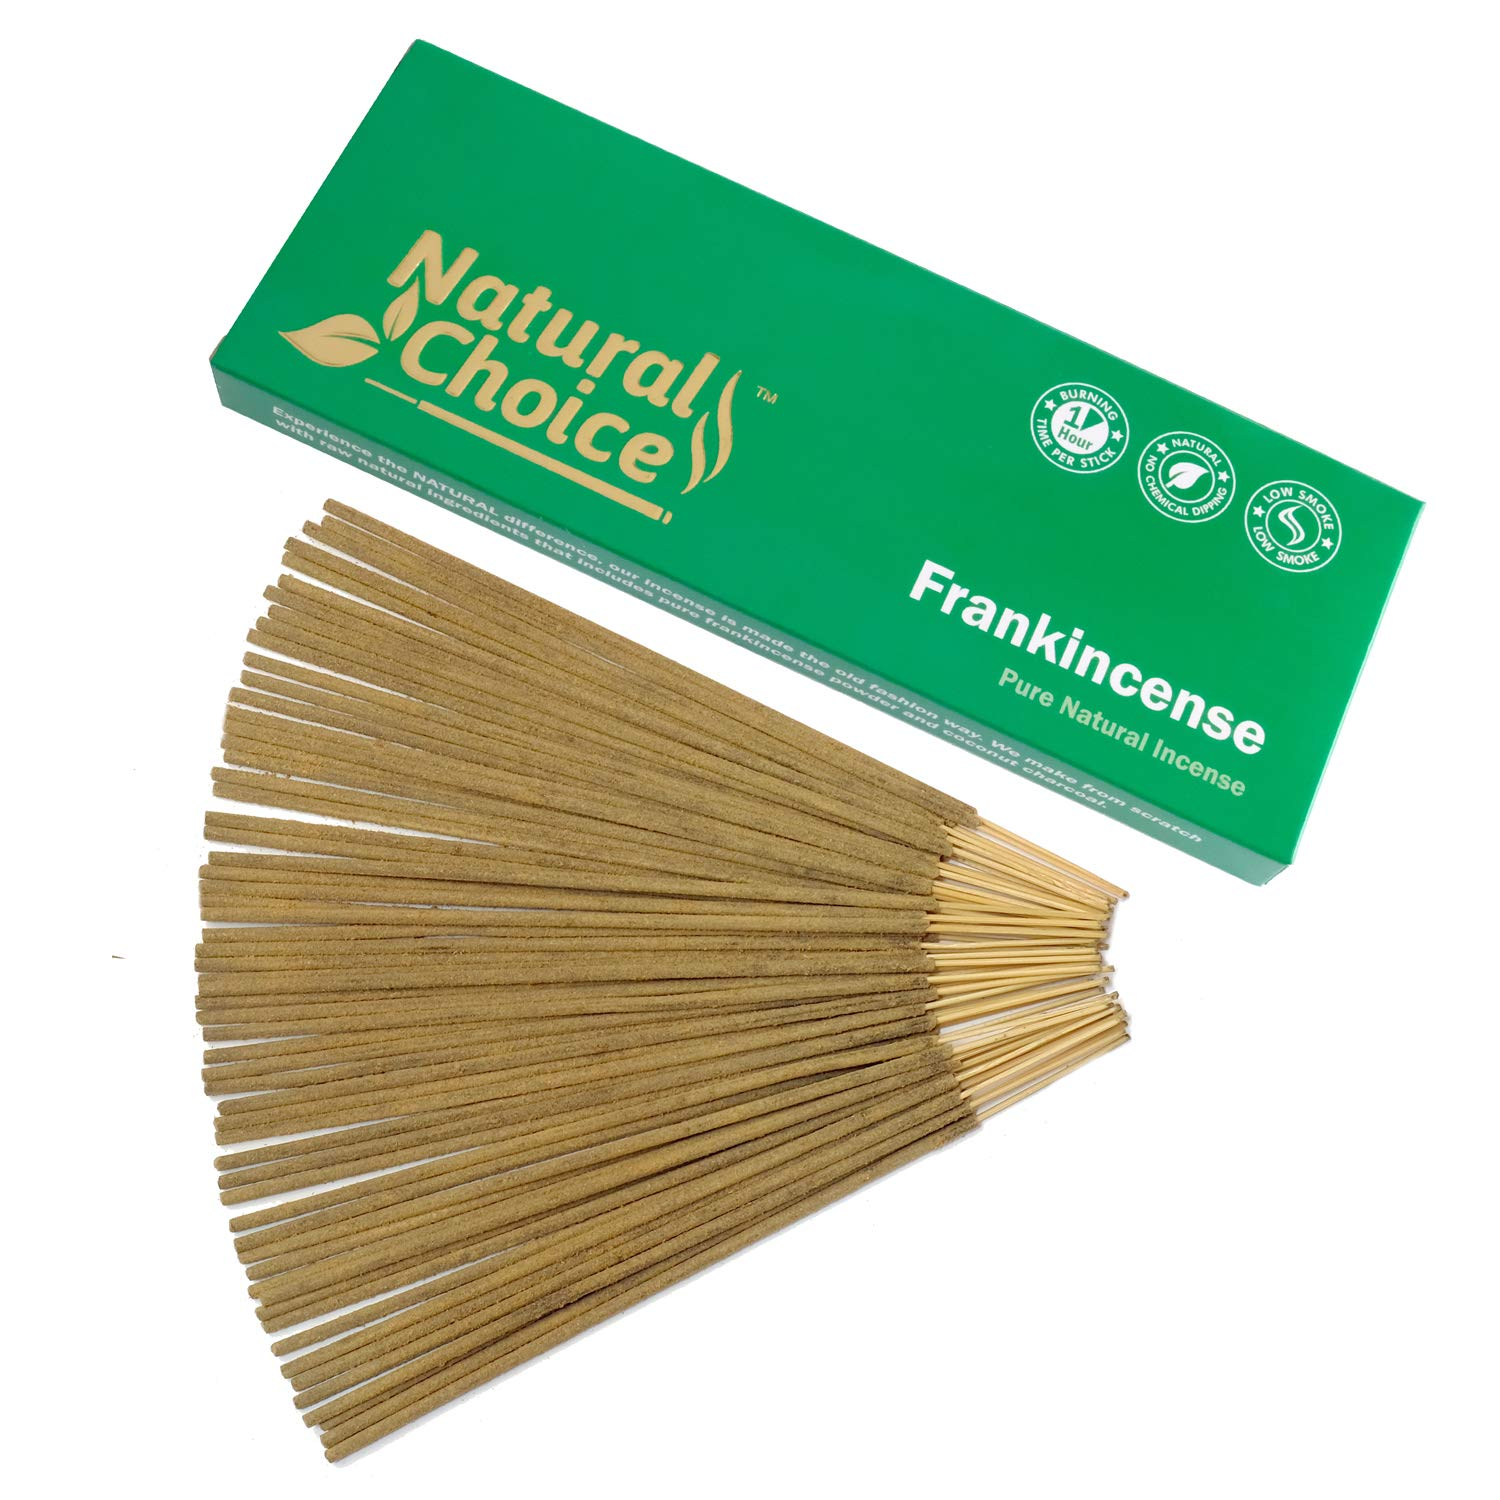 Natural Choice Incense Frankincense (Loban) Incense Sticks 100 Grams, Low Smoke Traditional Incense Sticks Made from Scratch, Never Dipped by Natural Choice Incense (Image #1)